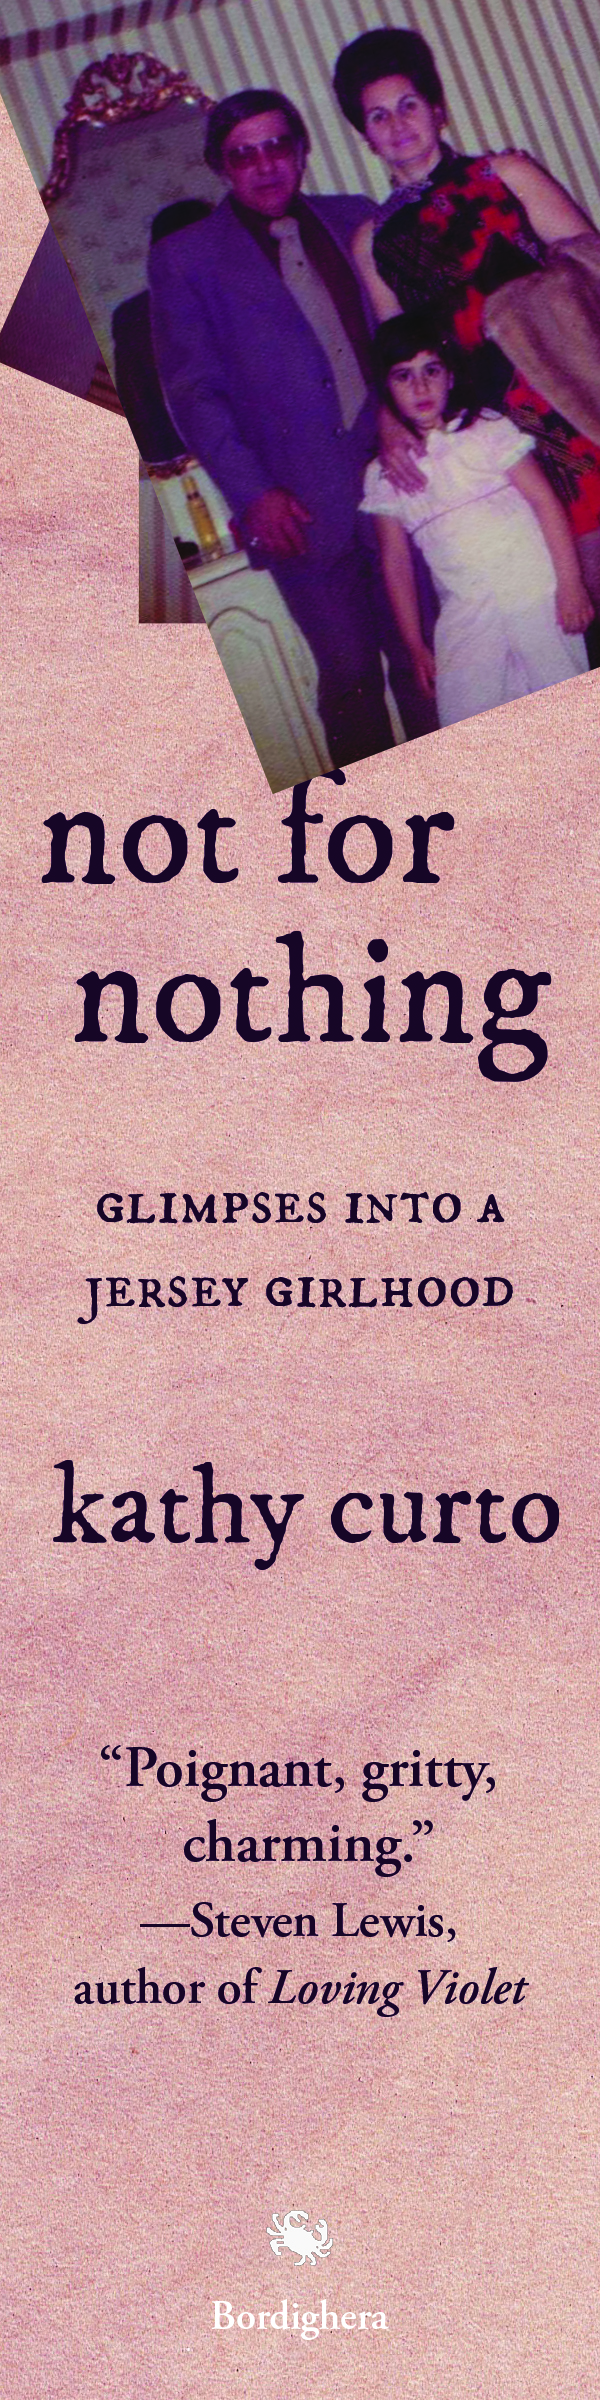 Bookmark for Kathy Curto's memoir, Not for Nothing